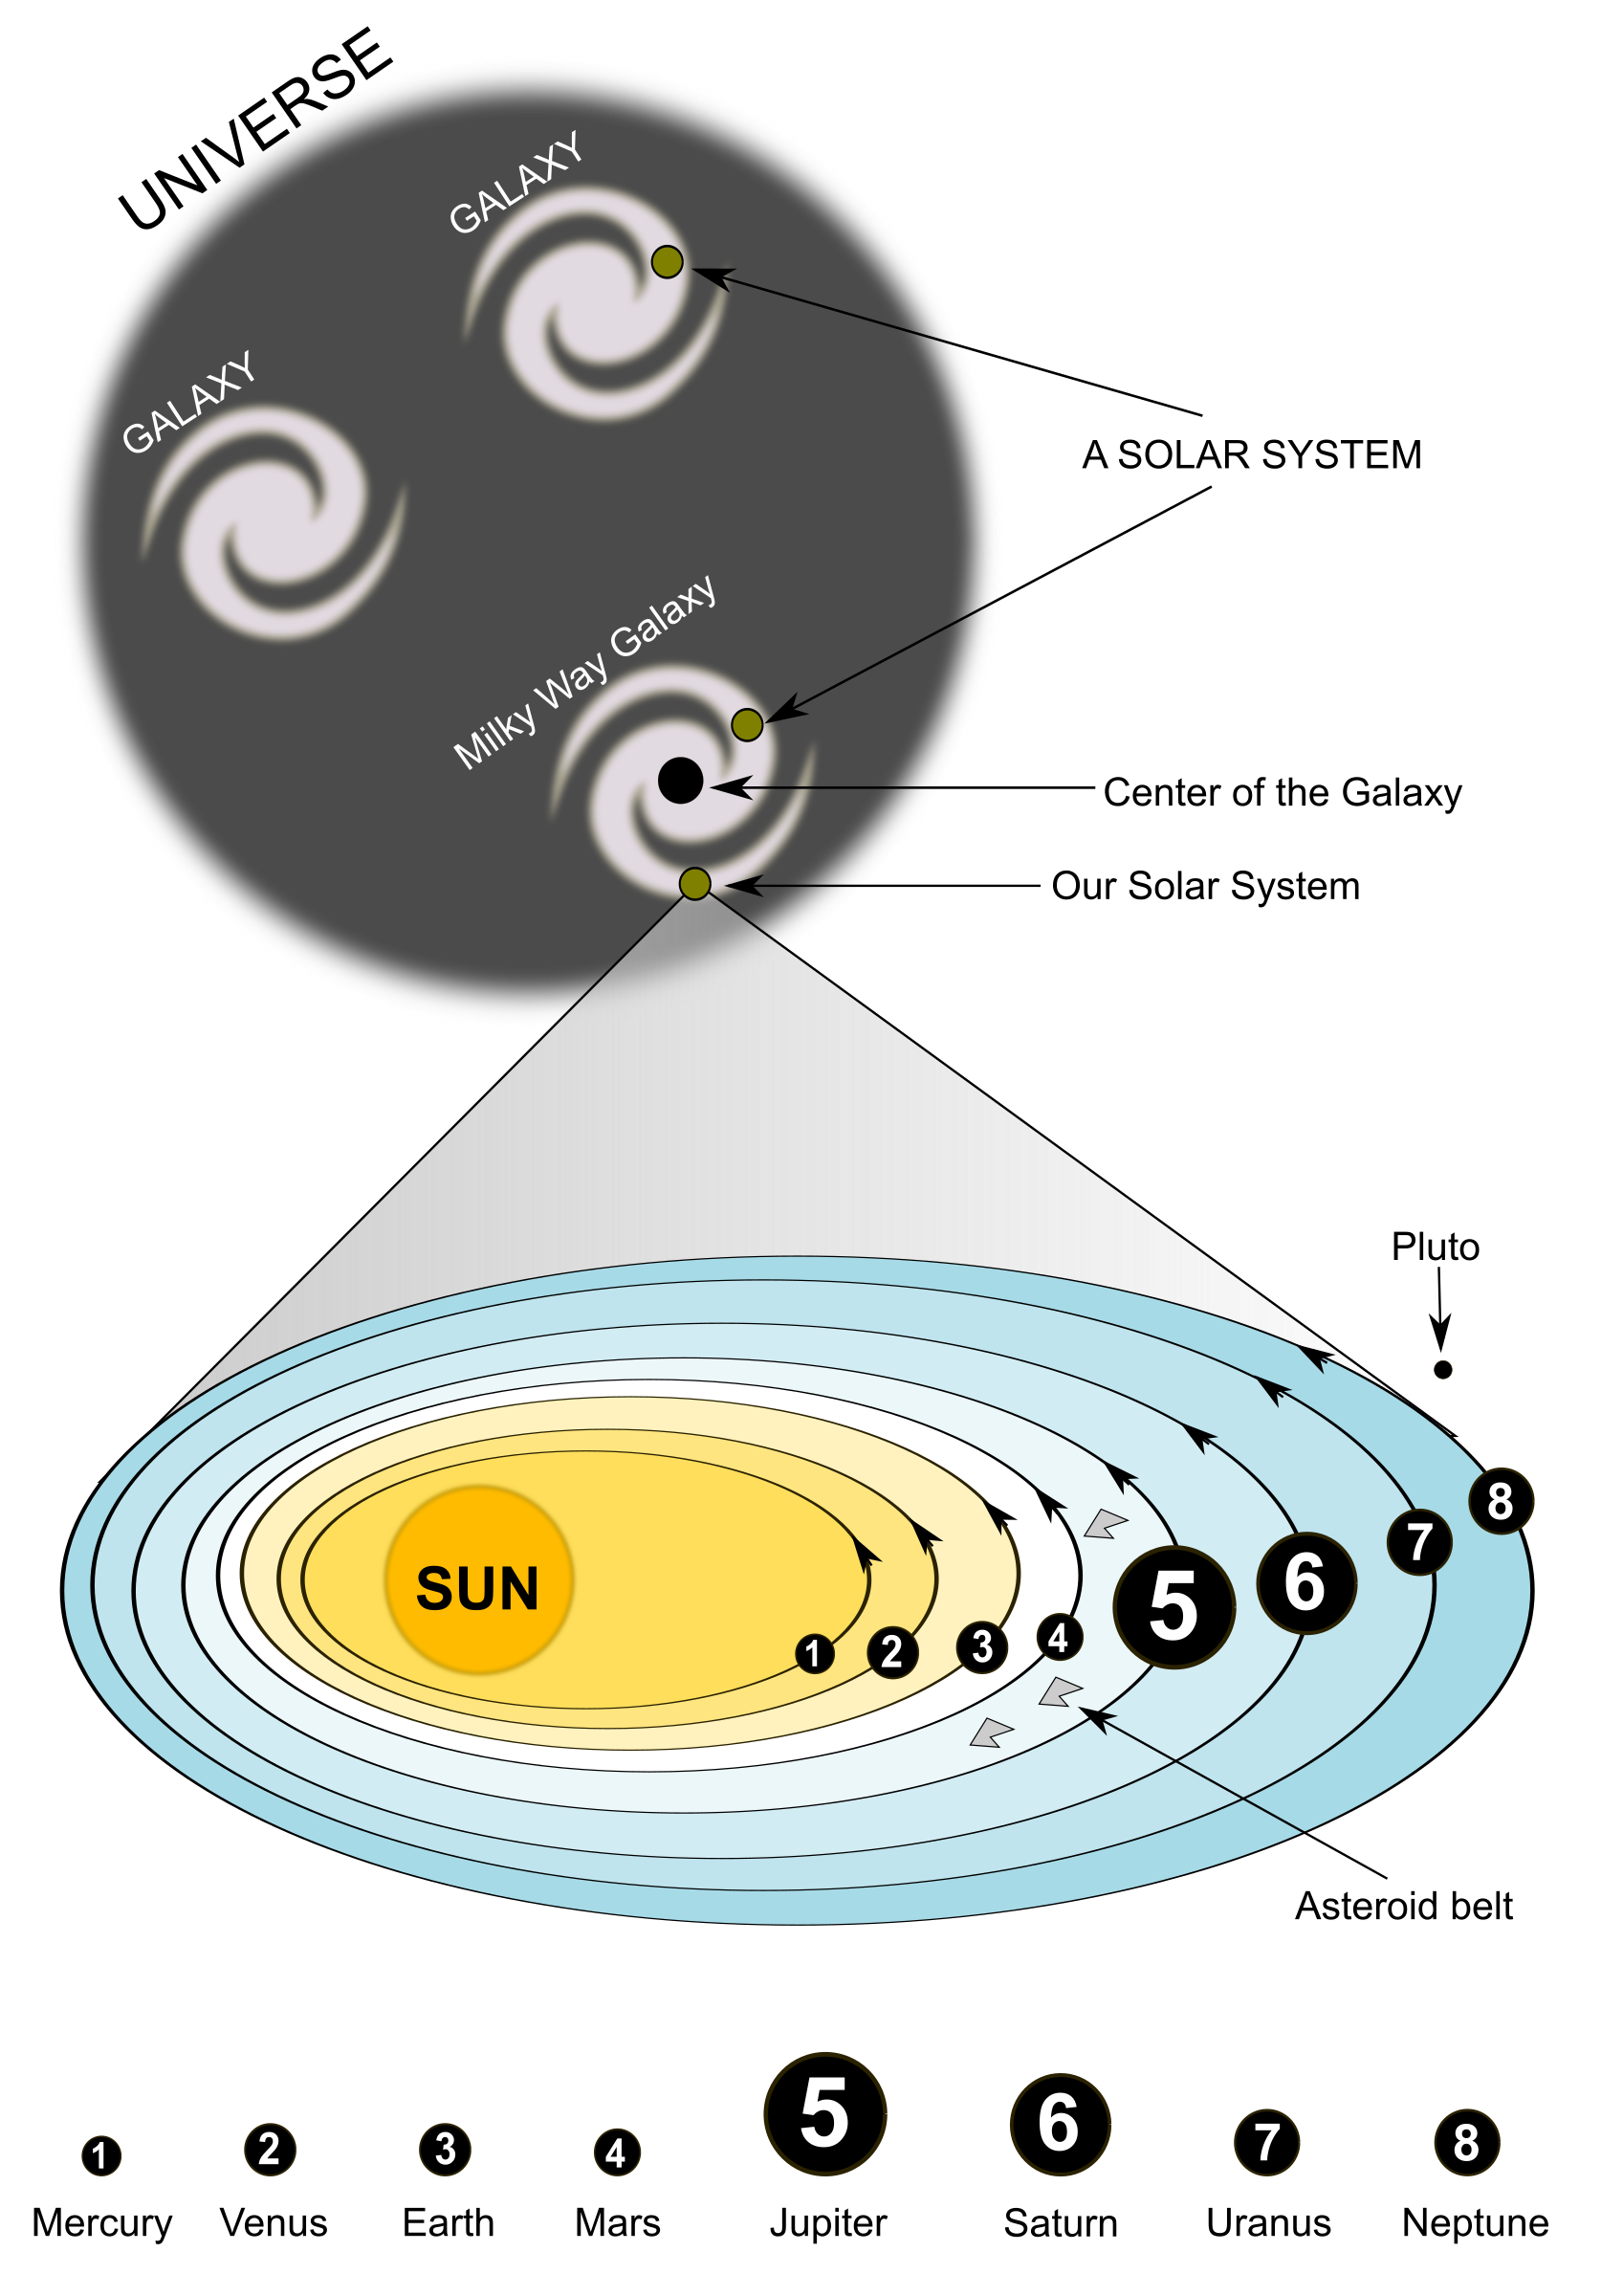 Of solar system pictures